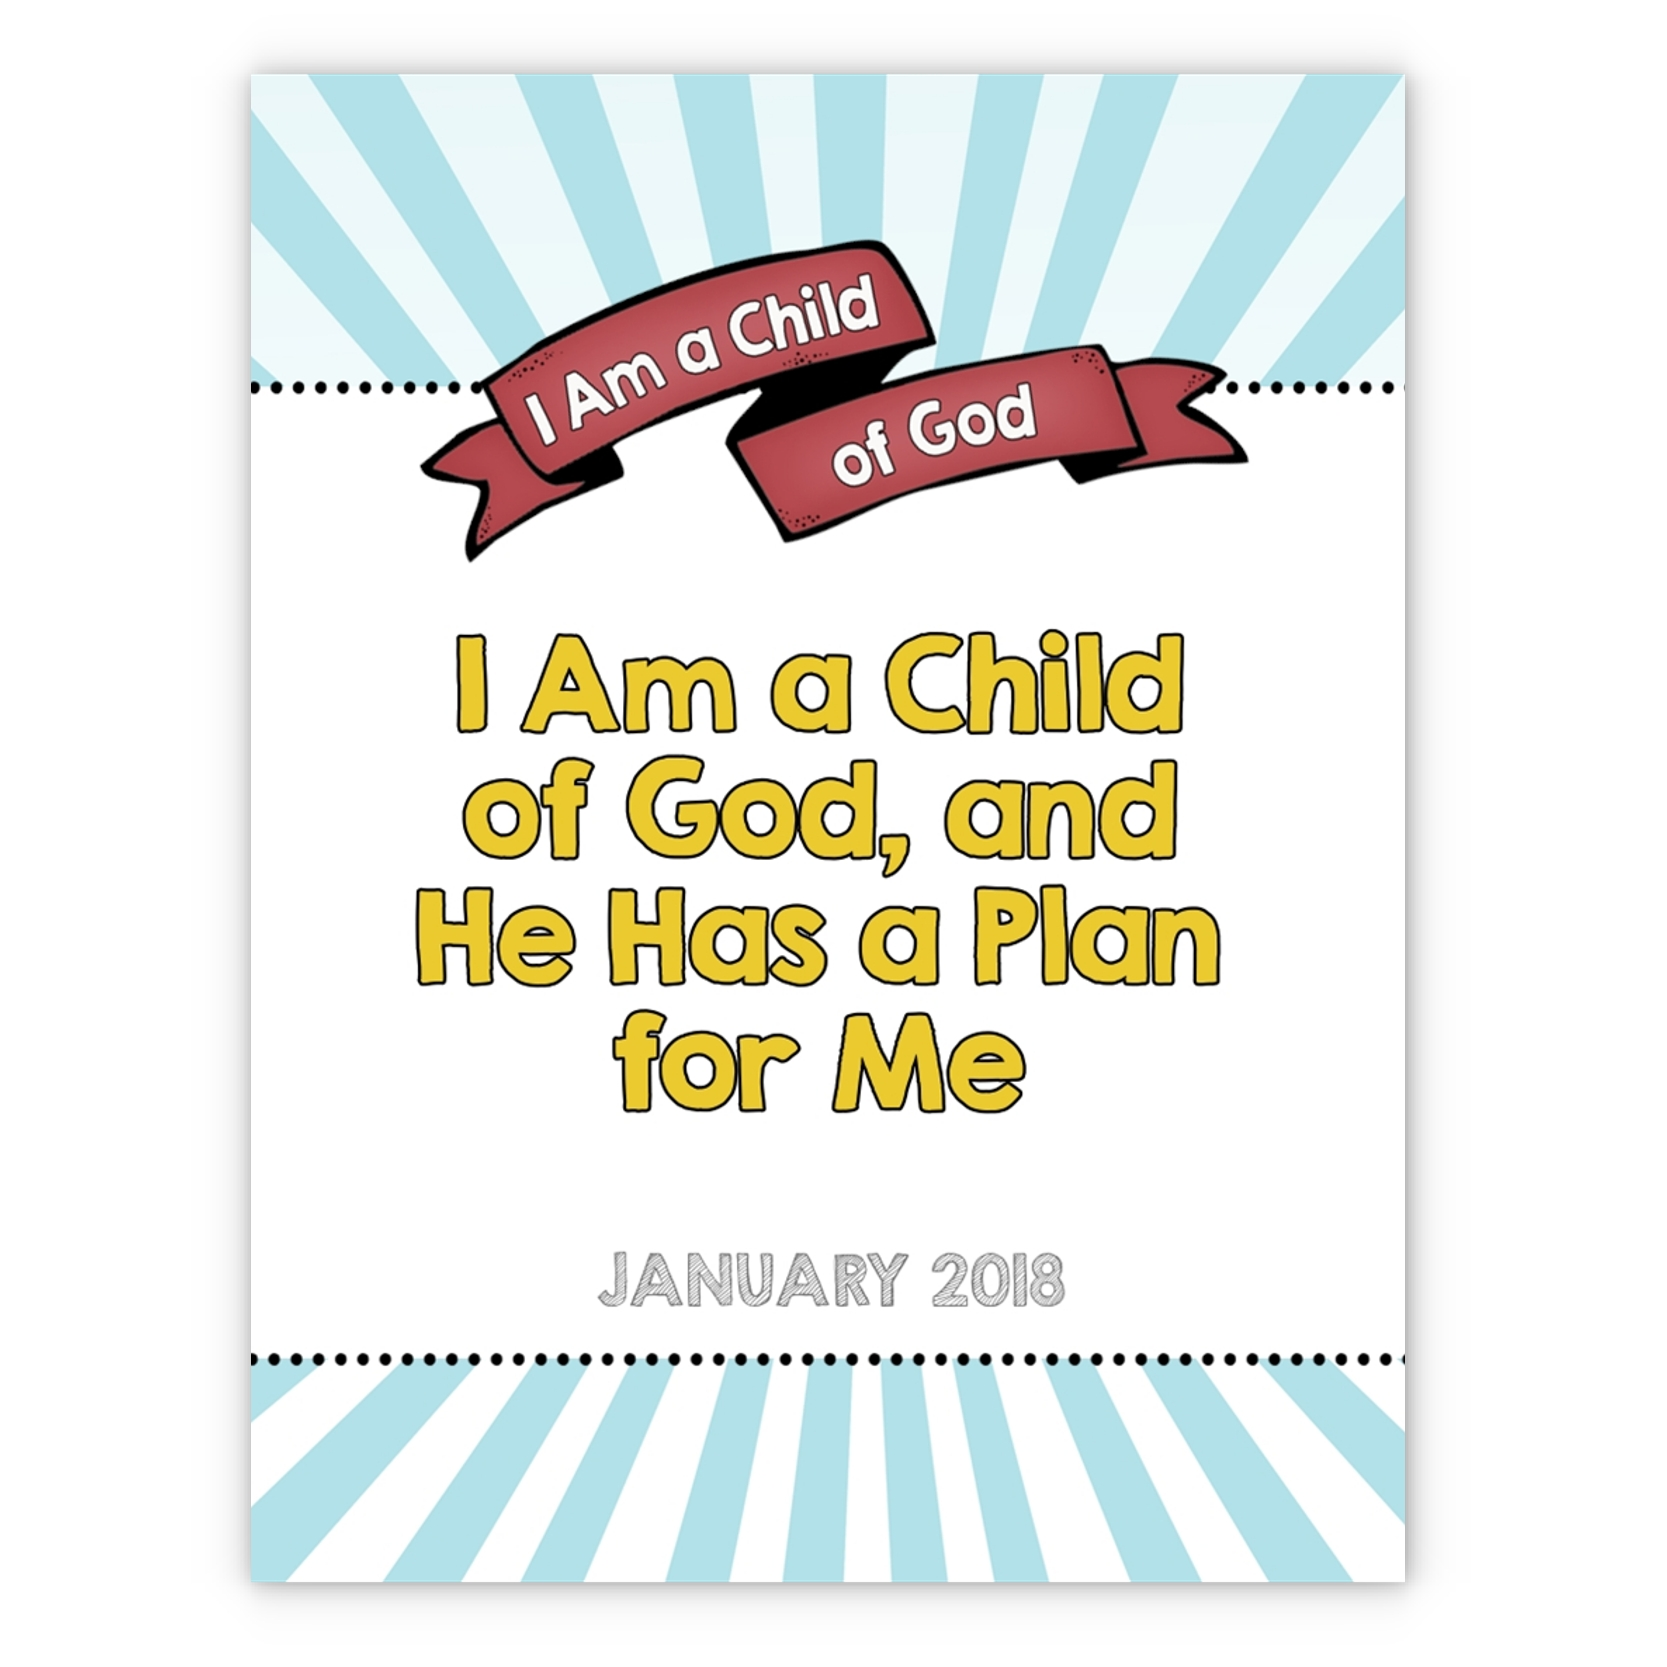 I am a child of god monthly theme posters